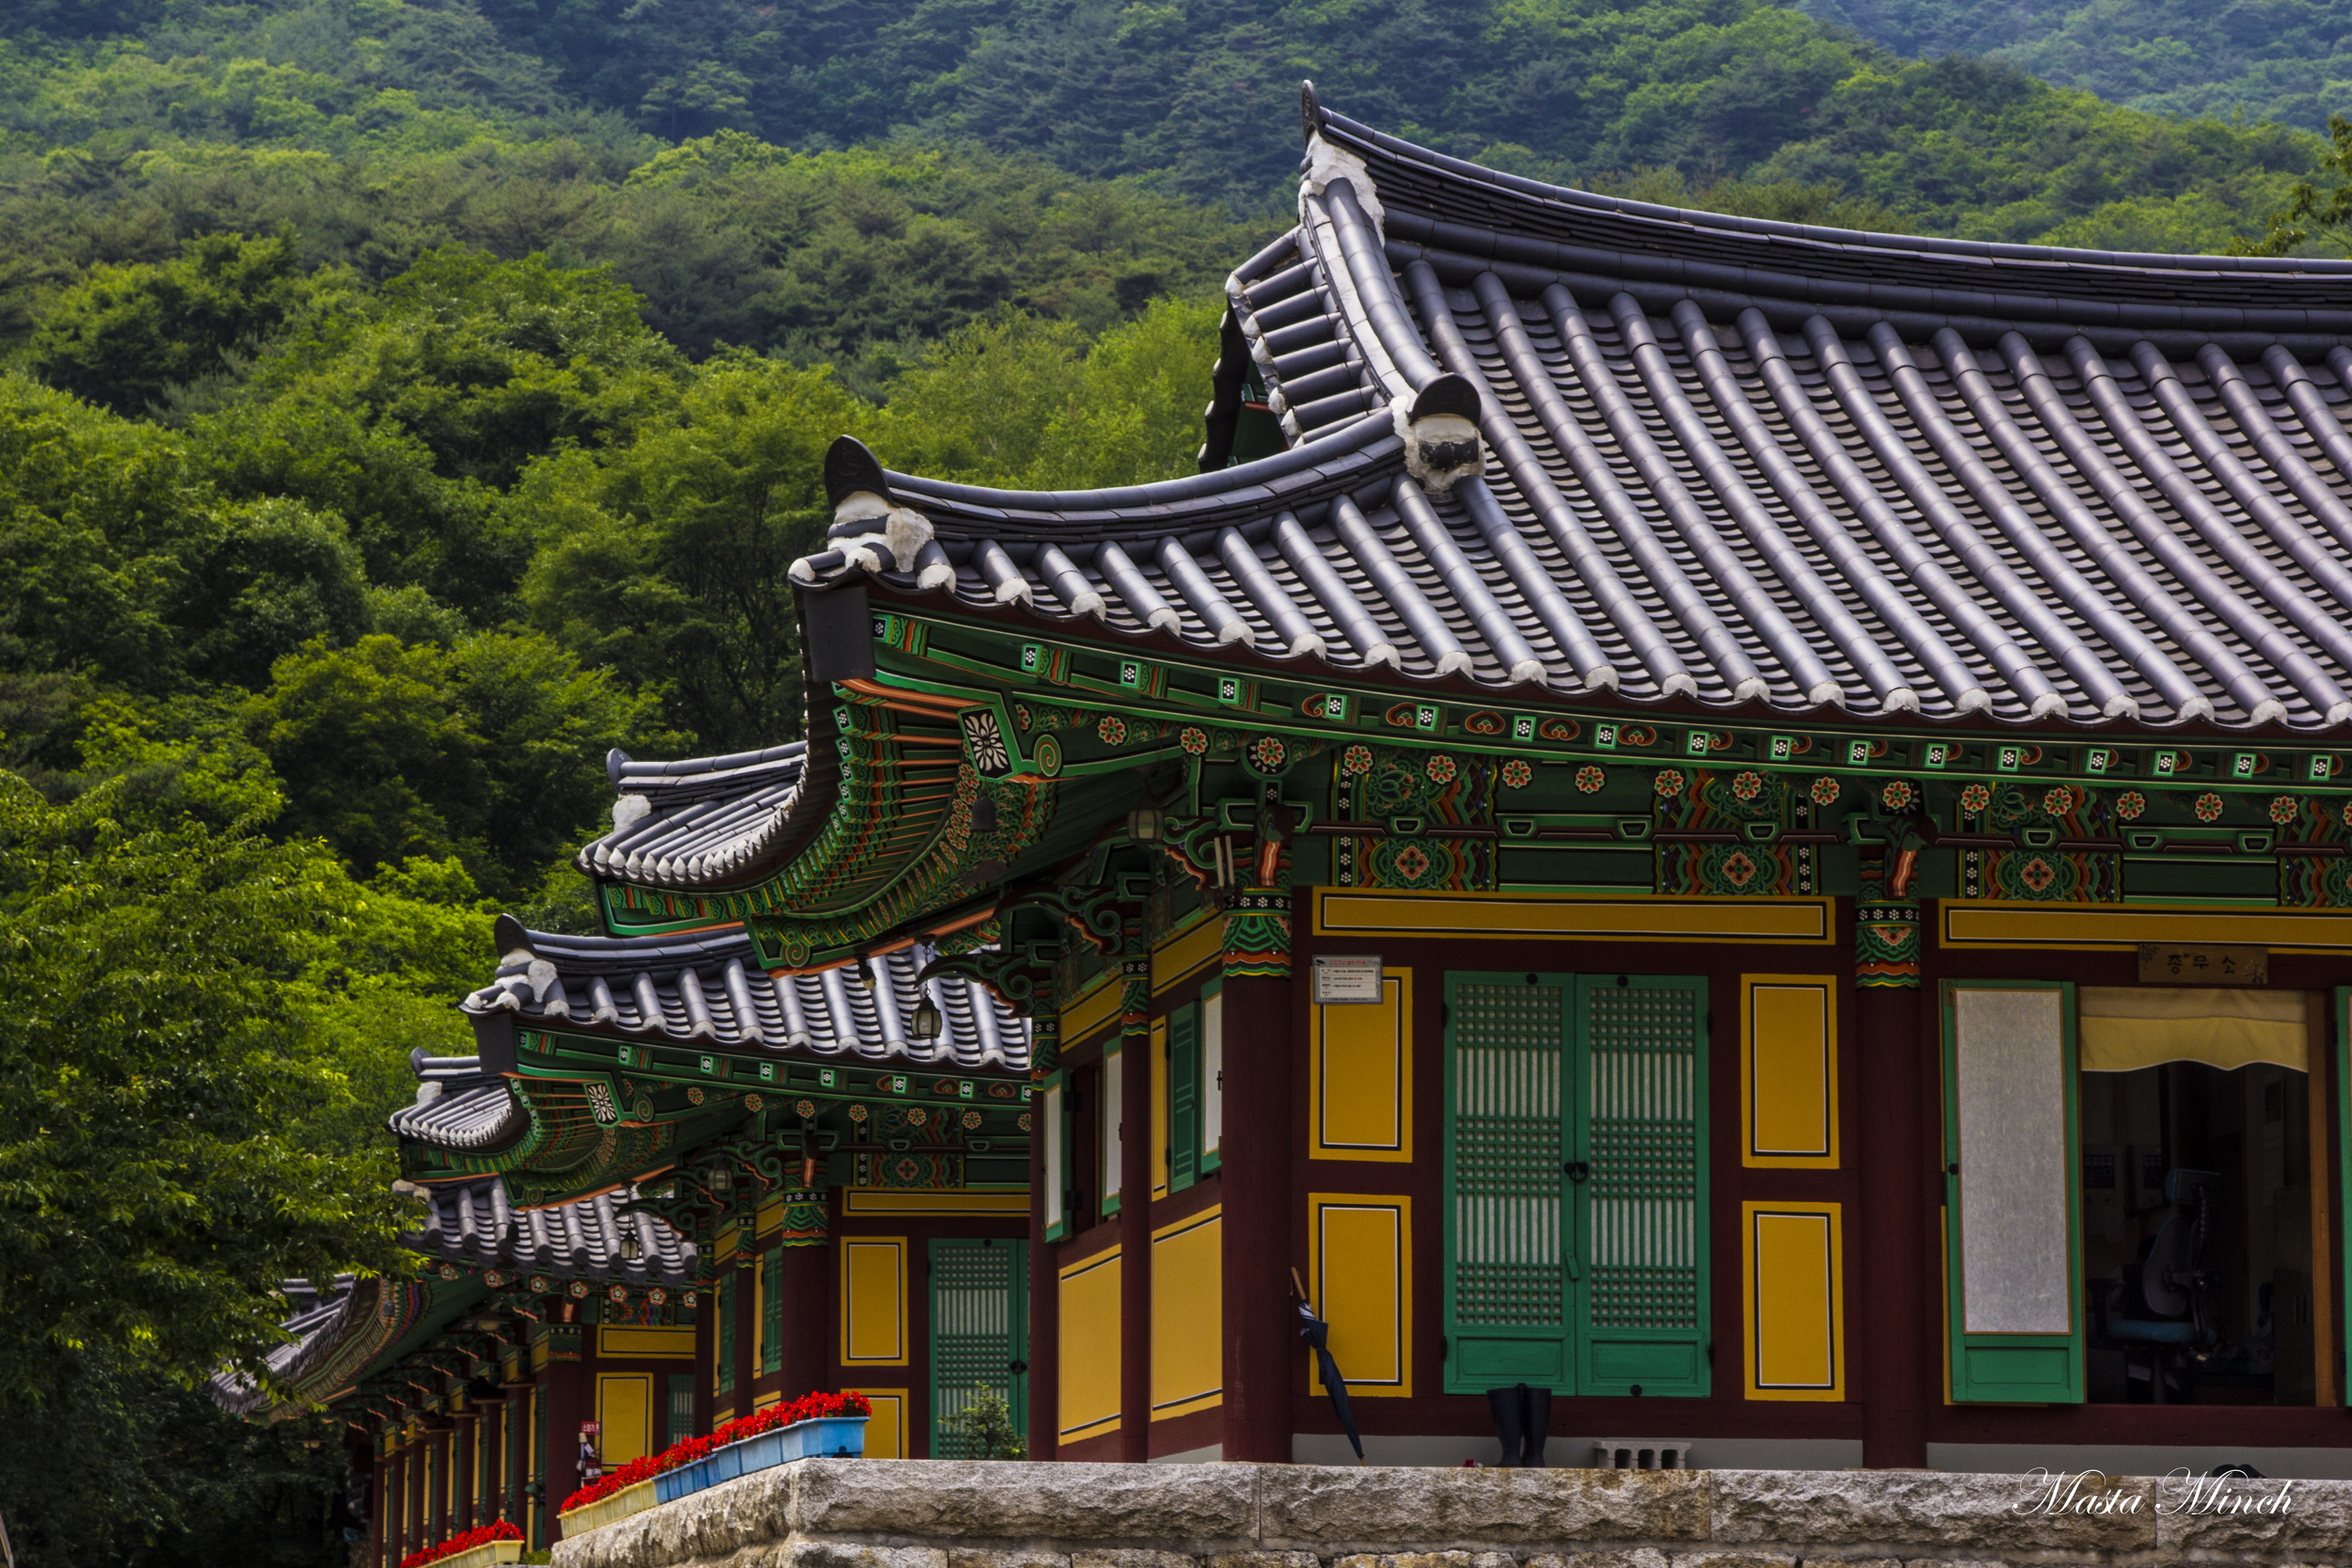 The houses for Monks in Cheonpyeongsa 천평사 that you get to by taking a ferry boat over a super dry lake.